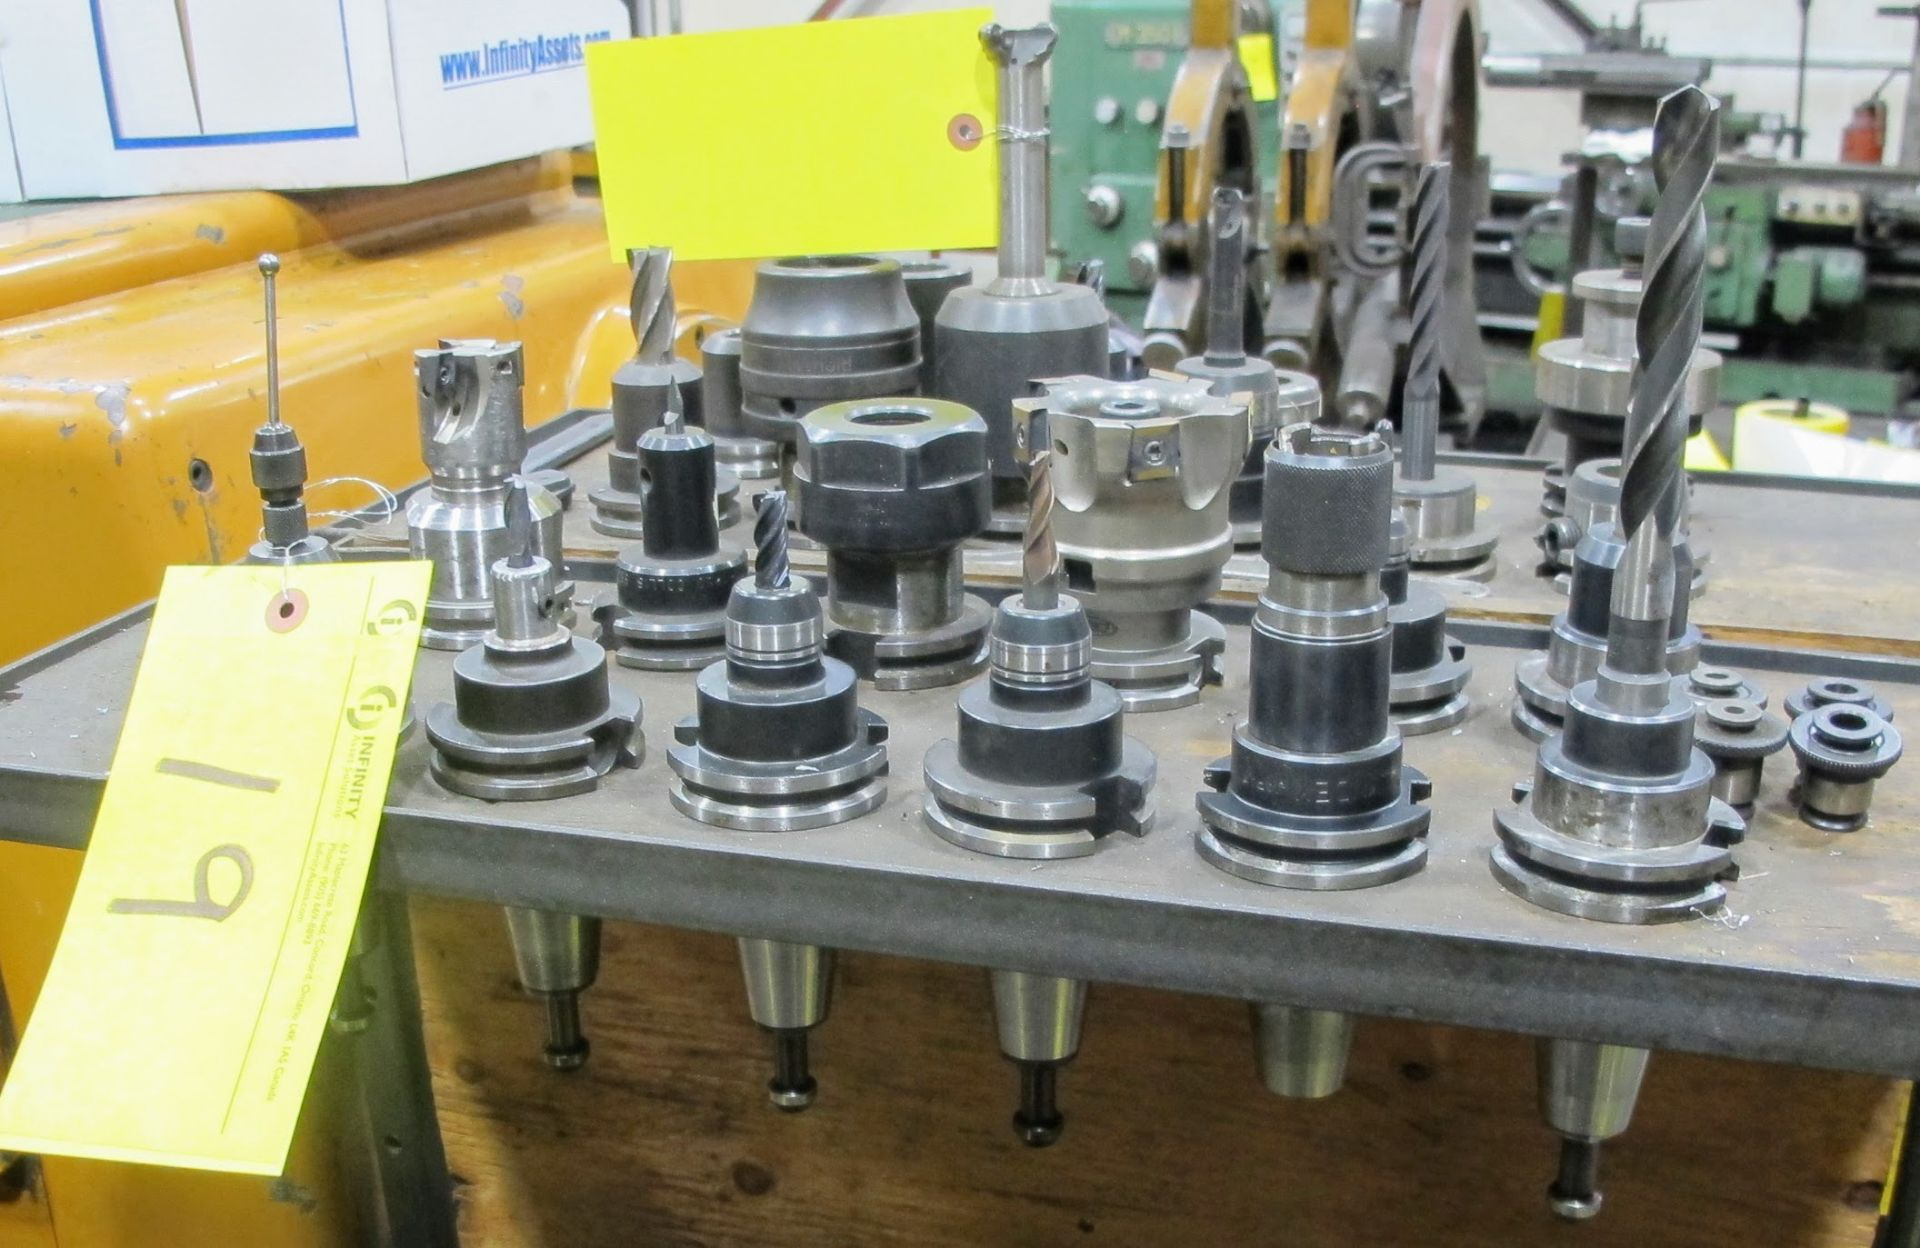 LOT OF 12 CAT 40 TOOL HOLDERS W/ATTACHMENT